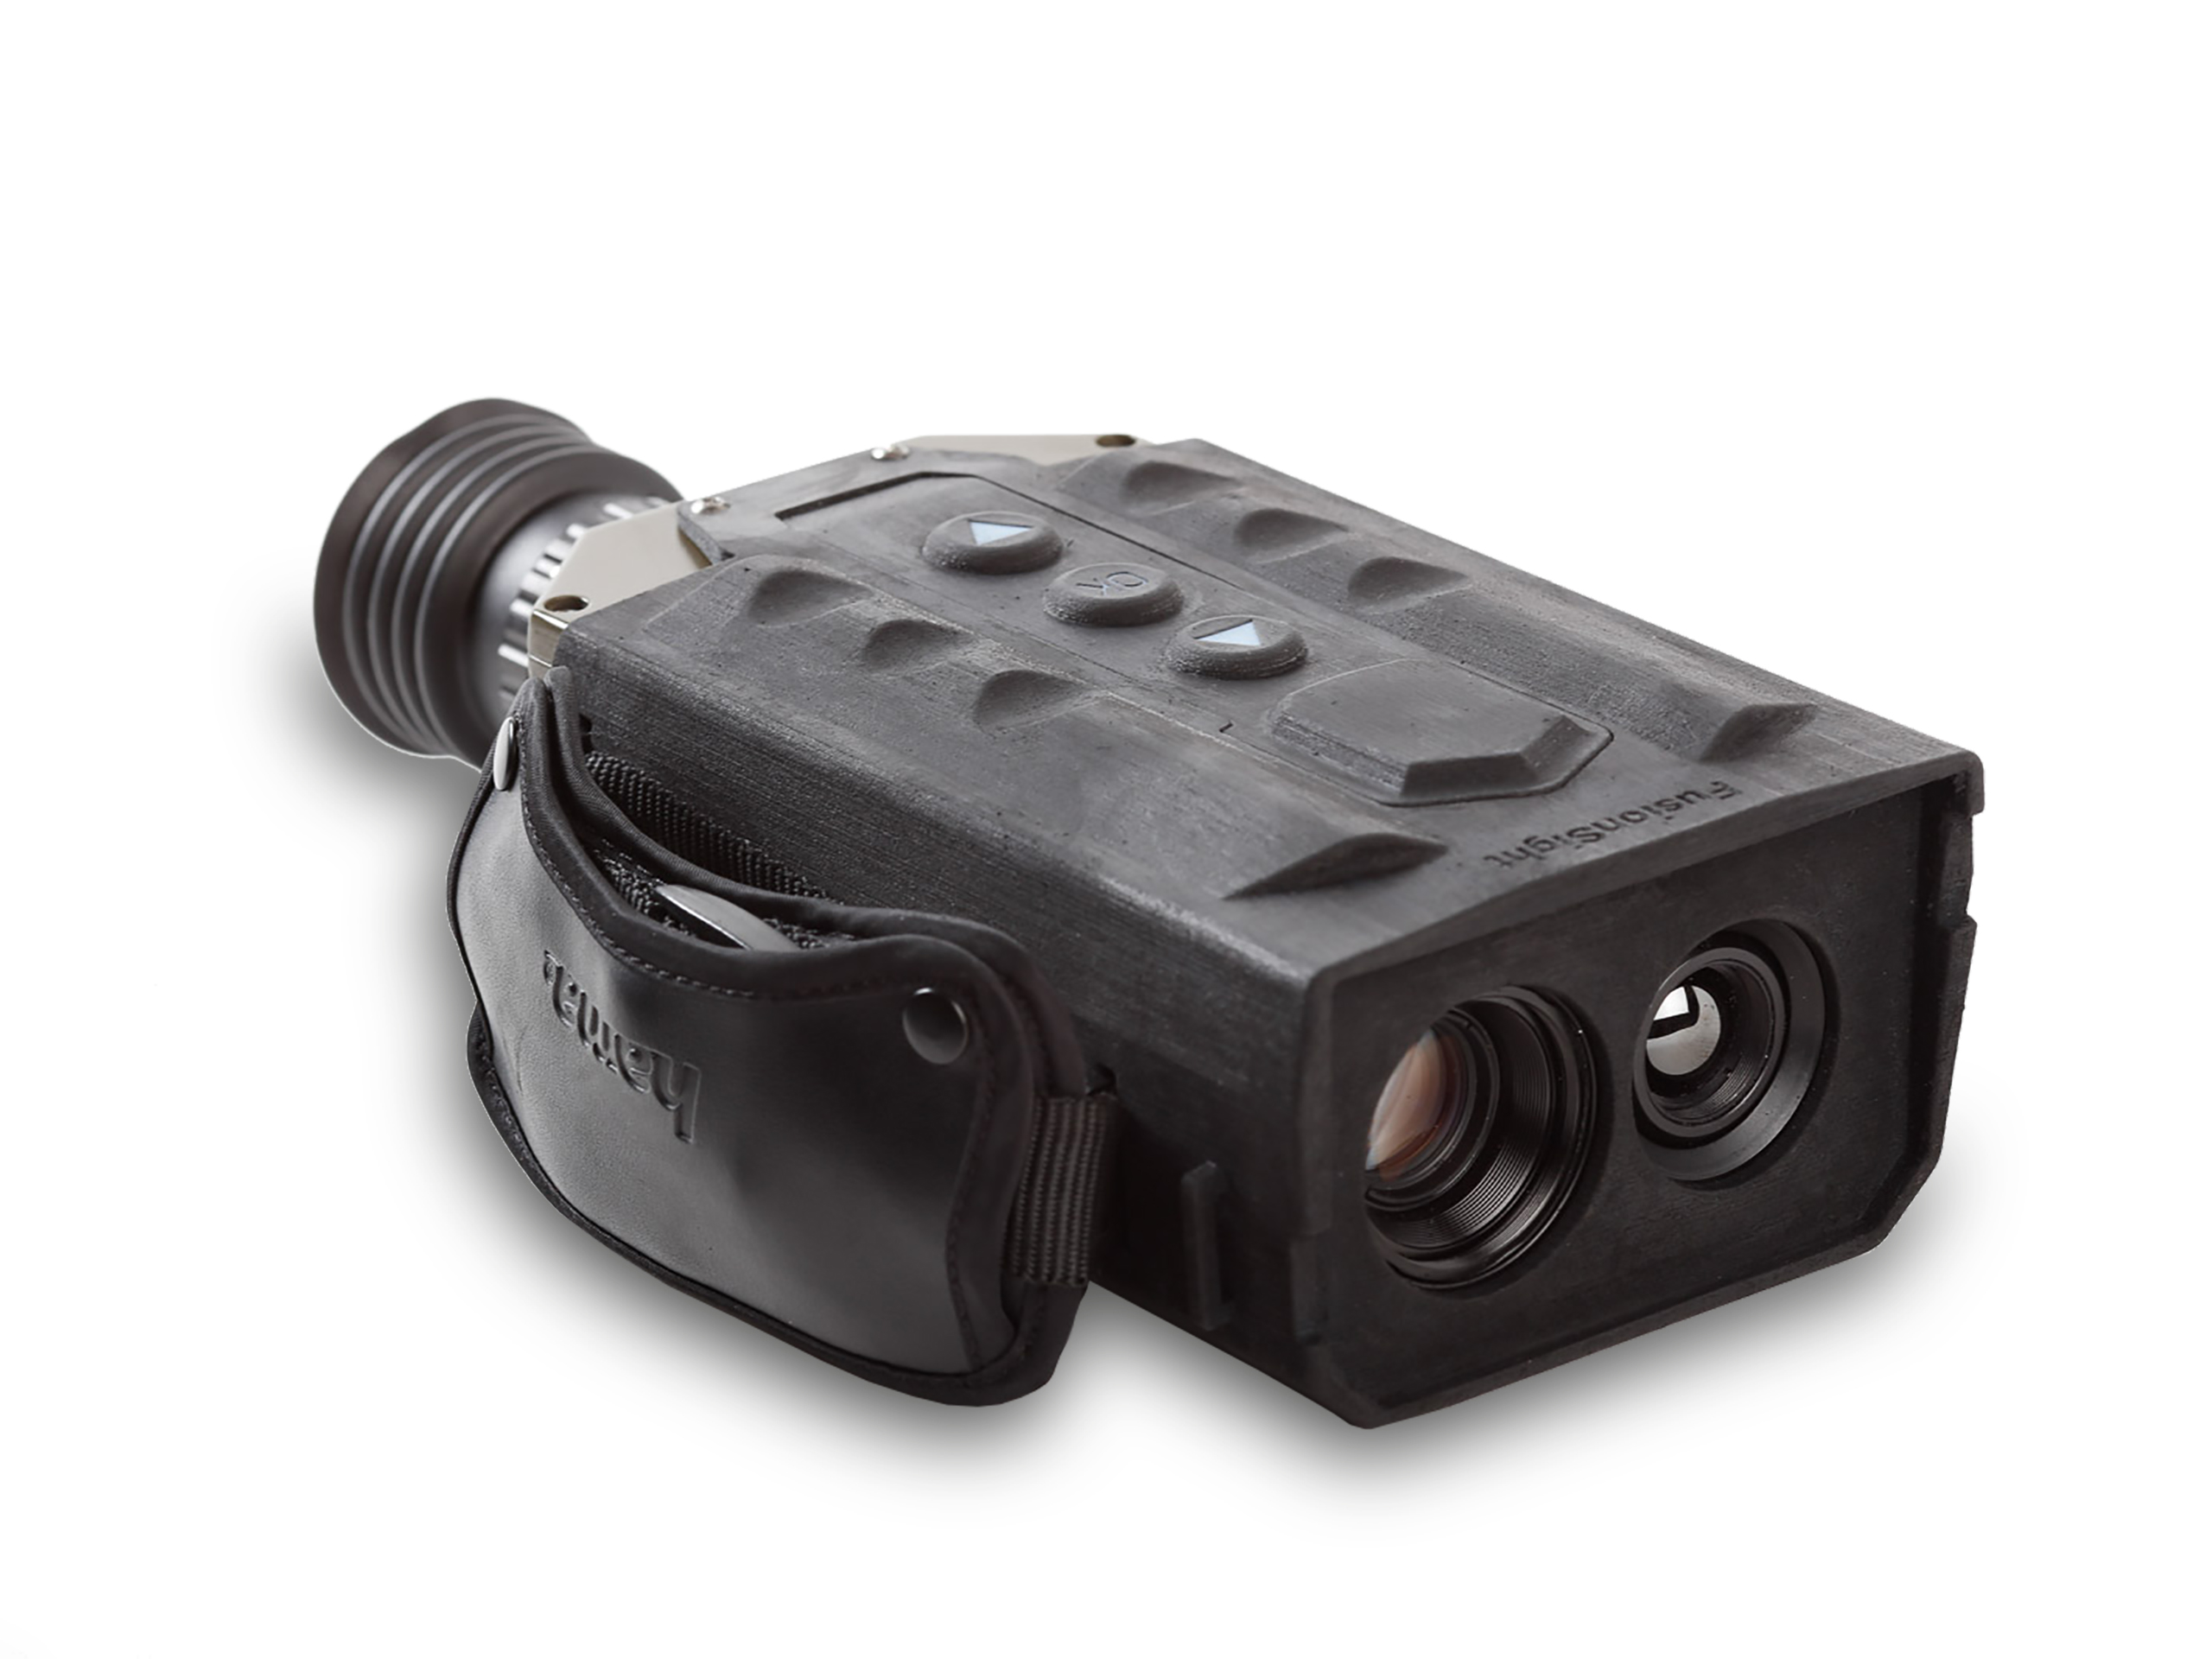 FusionSight observation device